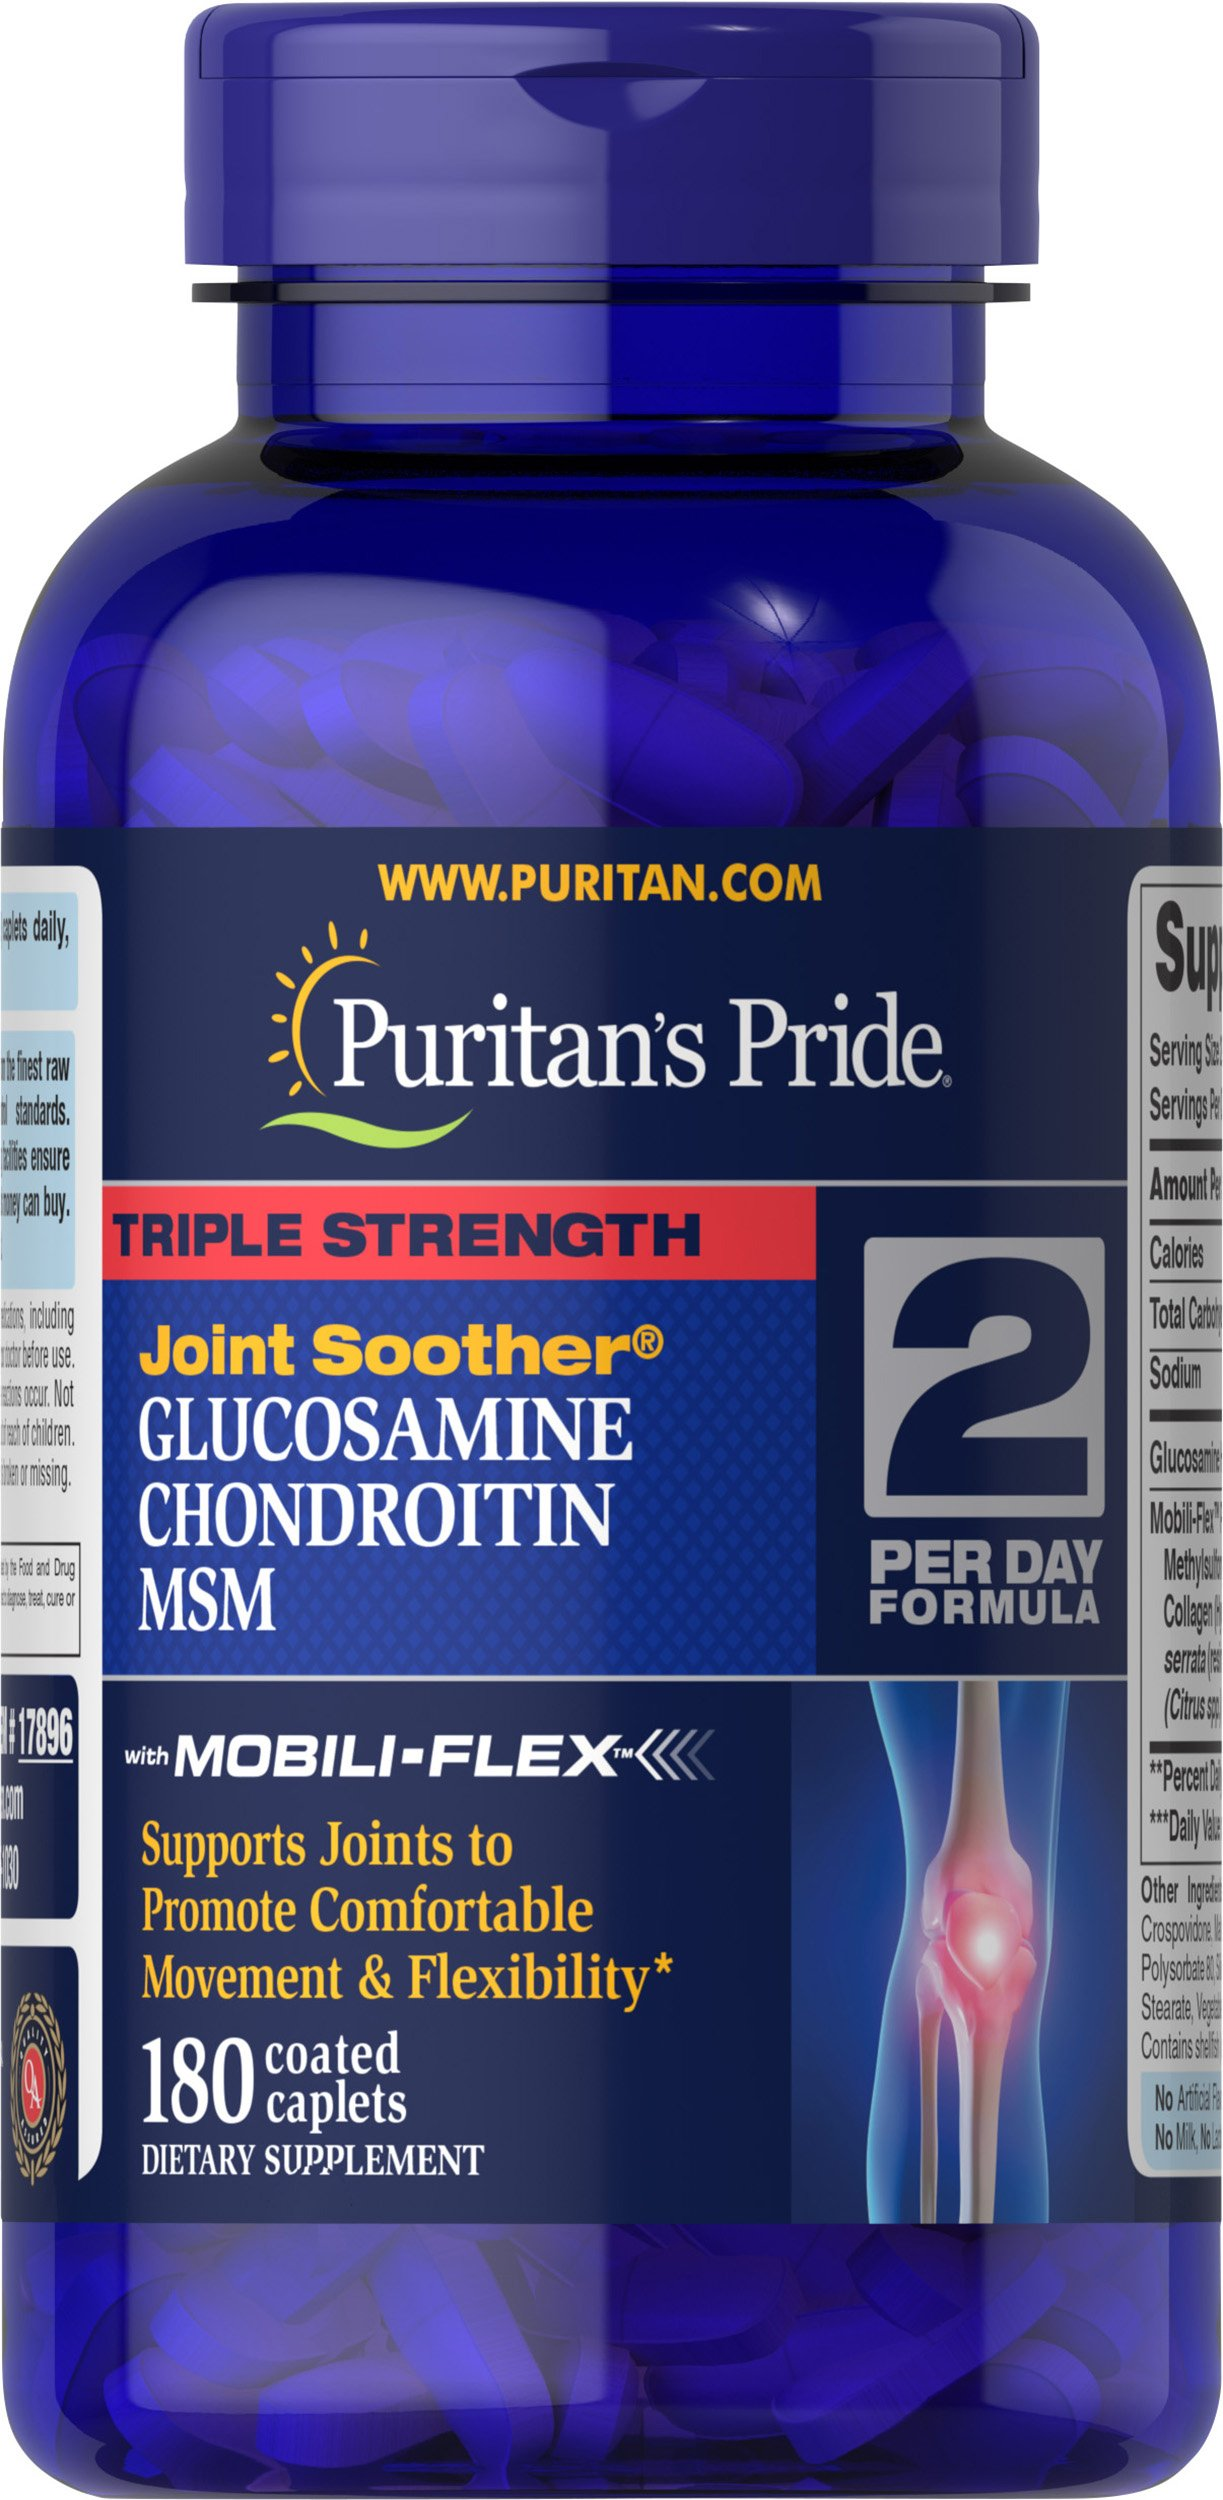 Puritans Pride Triple Strength Glucosamine, Chondroitin and Msm Joint Soother, 180 Count by Puritans Pride